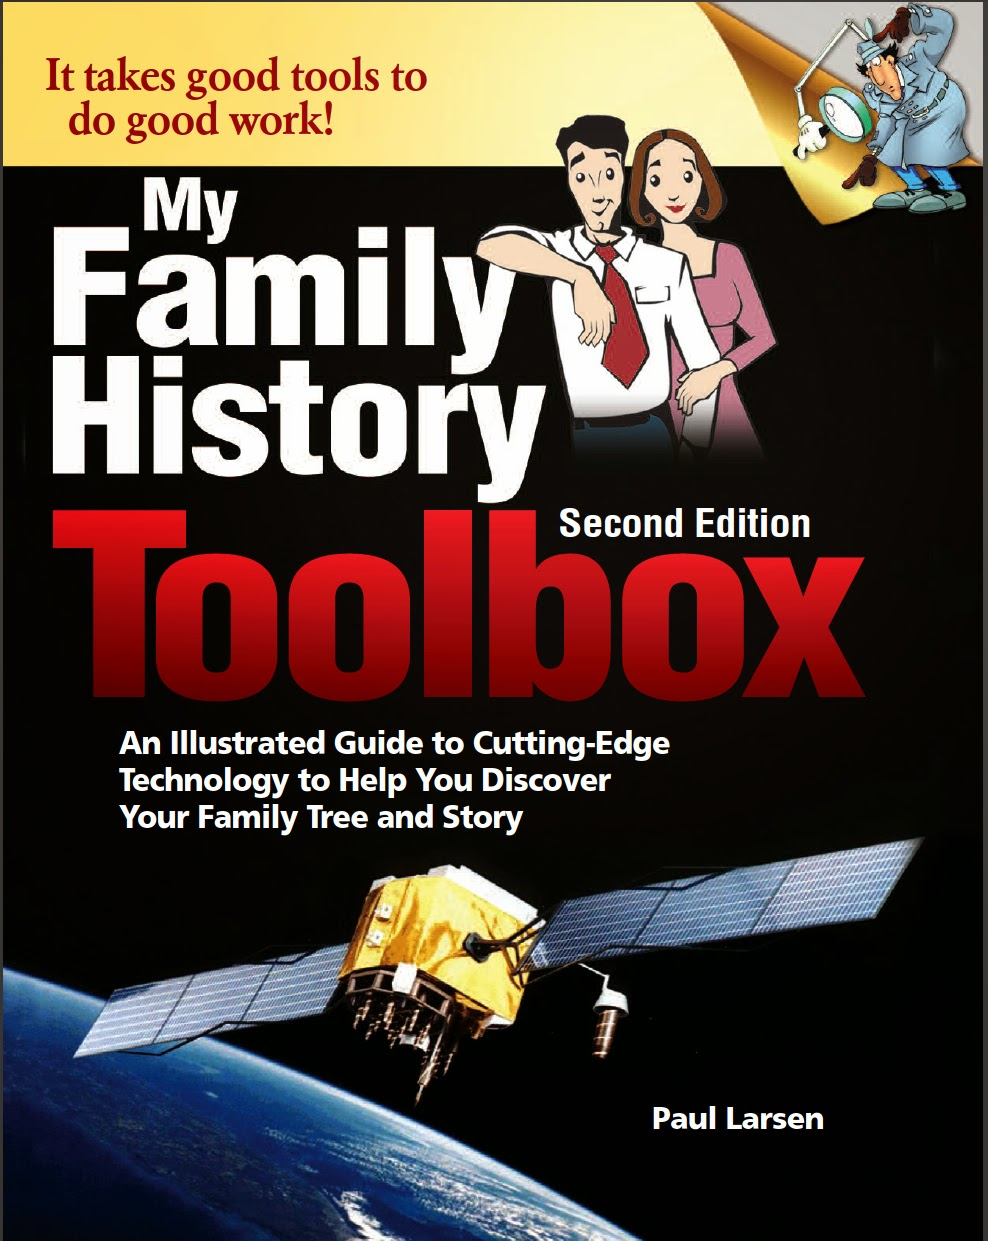 Genealogy's Star My Family History Toolbox 2  An Update. Interior Design Assistant Resumes Template. Resume Sample Blank Form Template. Real Free Resume Templates. Where To Post A Resumes Template. Quickbooks Invoice Templates Free Download. Loan Agreement Template Microsoft. Sample Of Motivation Letter For Voluntary Work. Salary Increase Letter Template From Employer To Employee